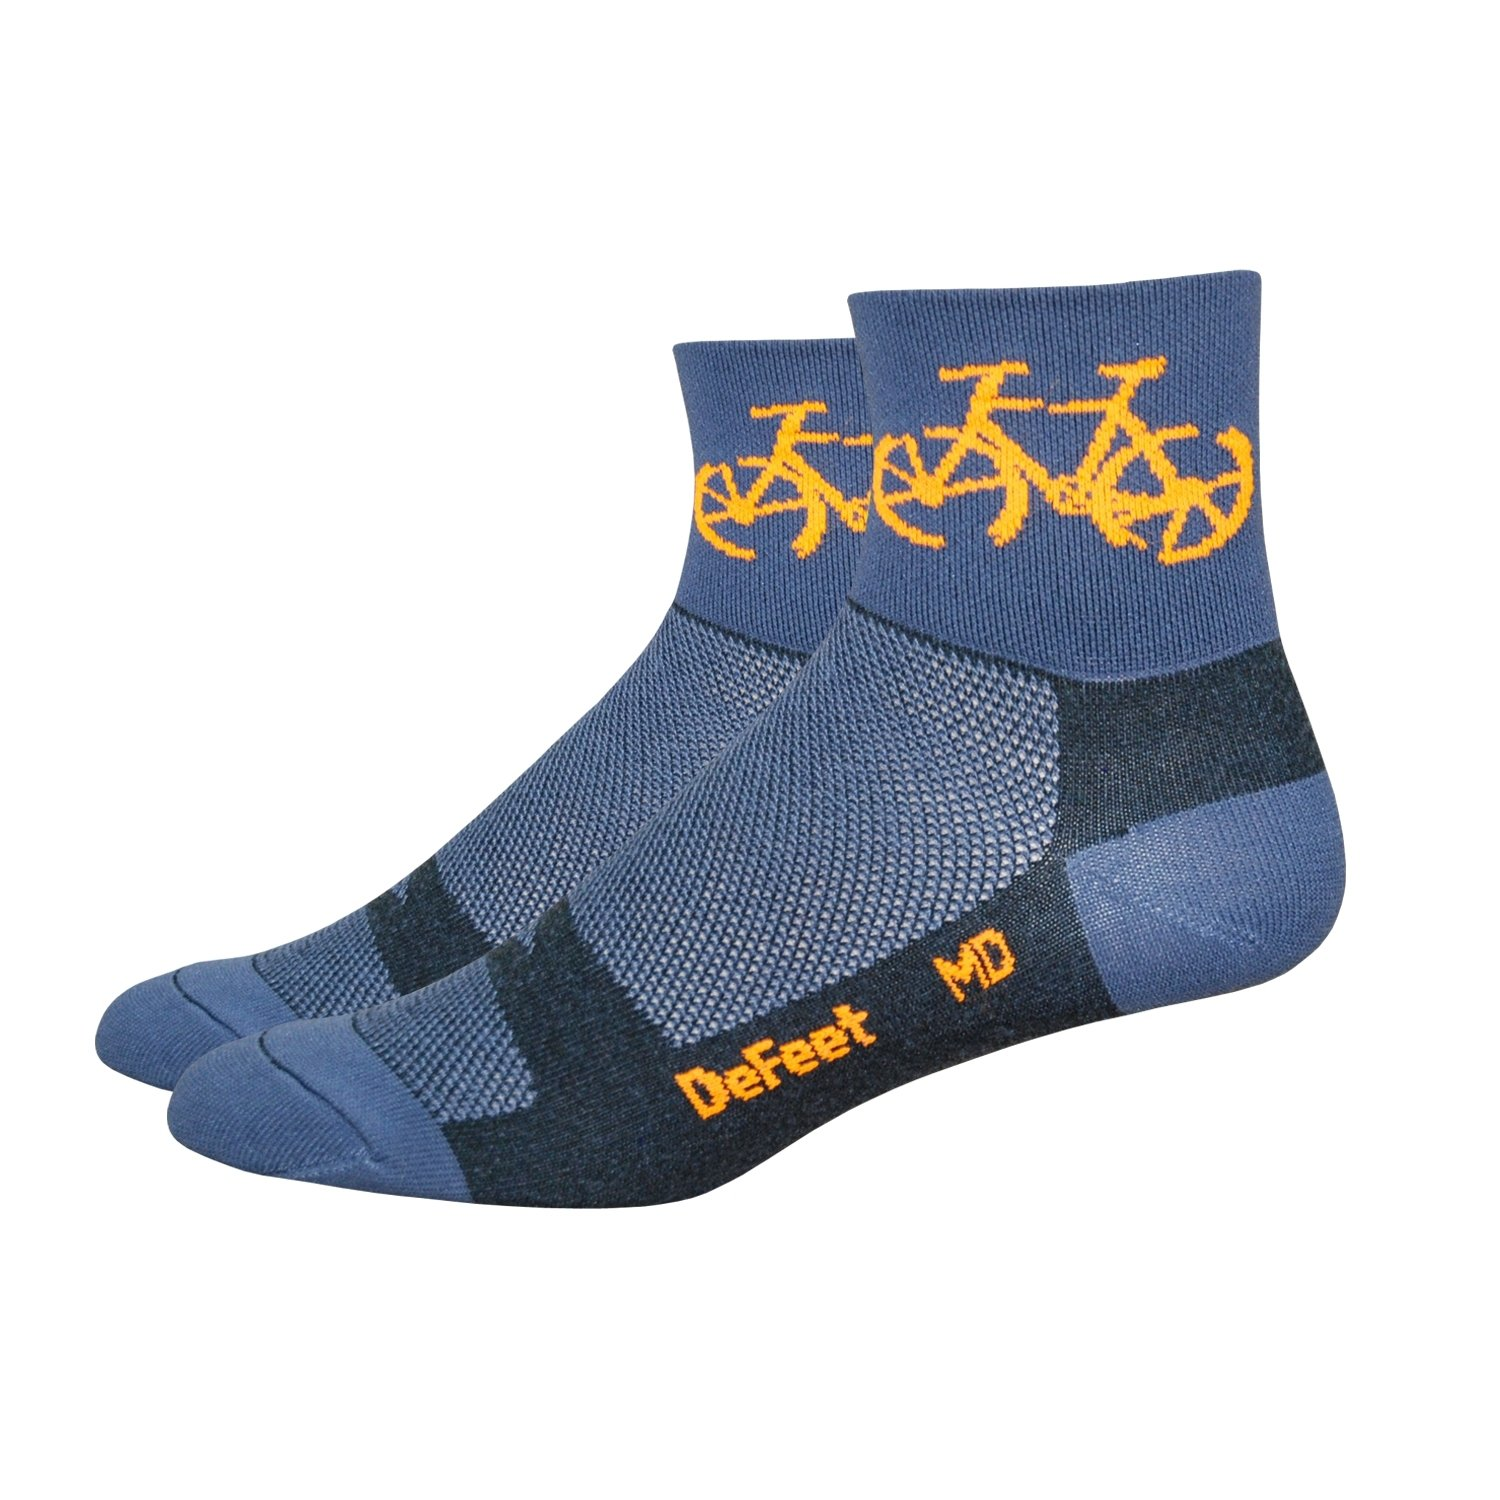 Biking socks